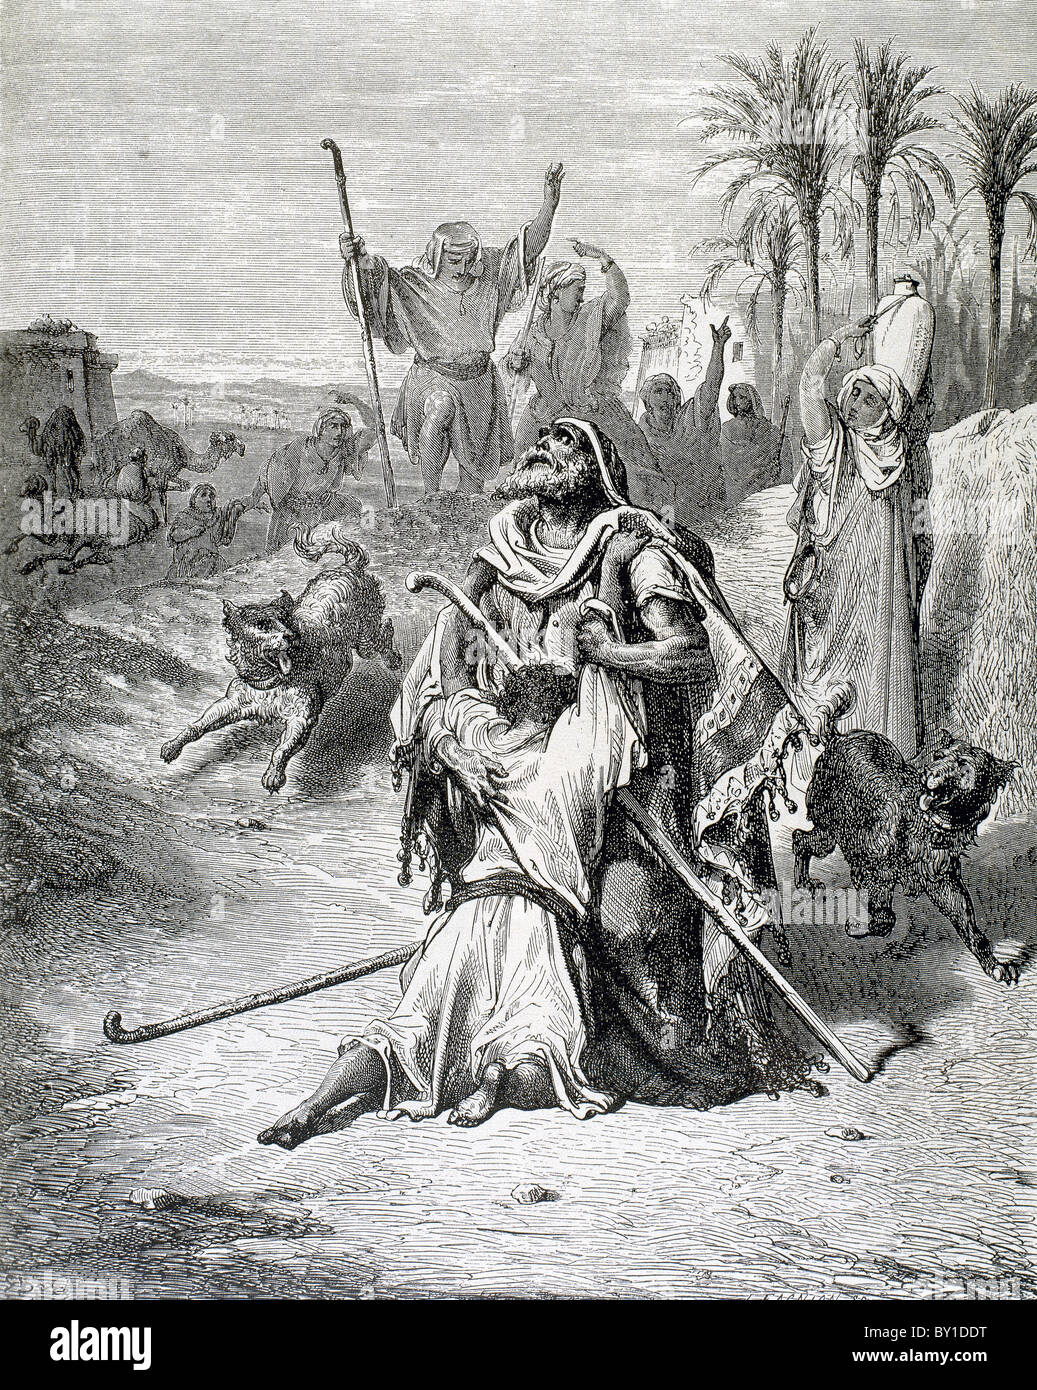 Parable of the Prodigal Son. The return of the Progal Son. G. Dore engraving. - Stock Image